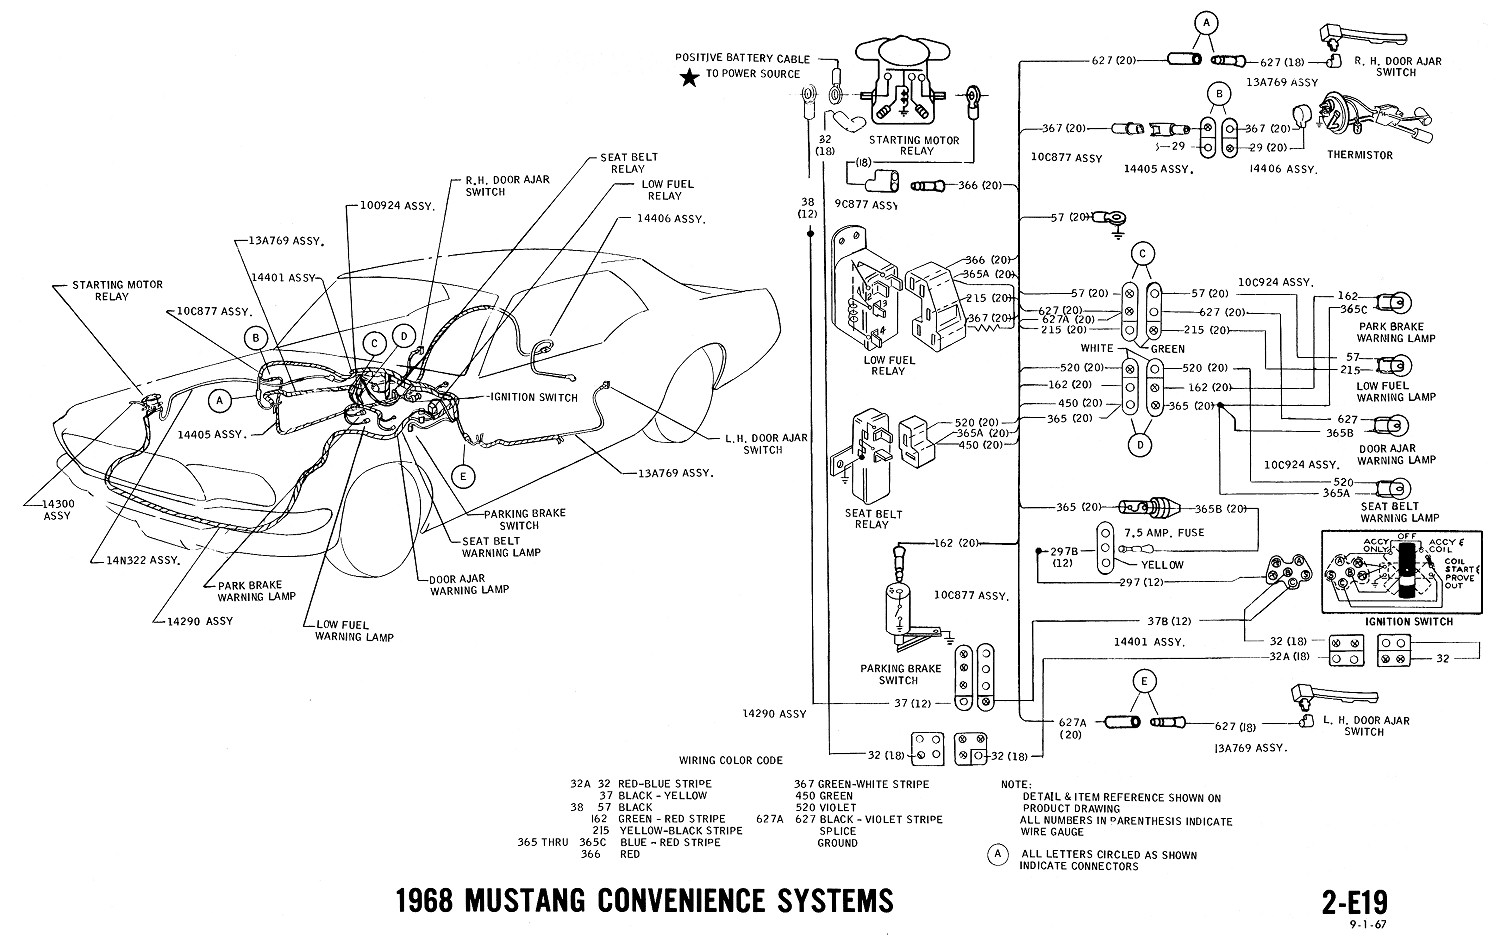 E19 1968 mustang wiring diagrams evolving software mustang wiring diagrams at readyjetset.co